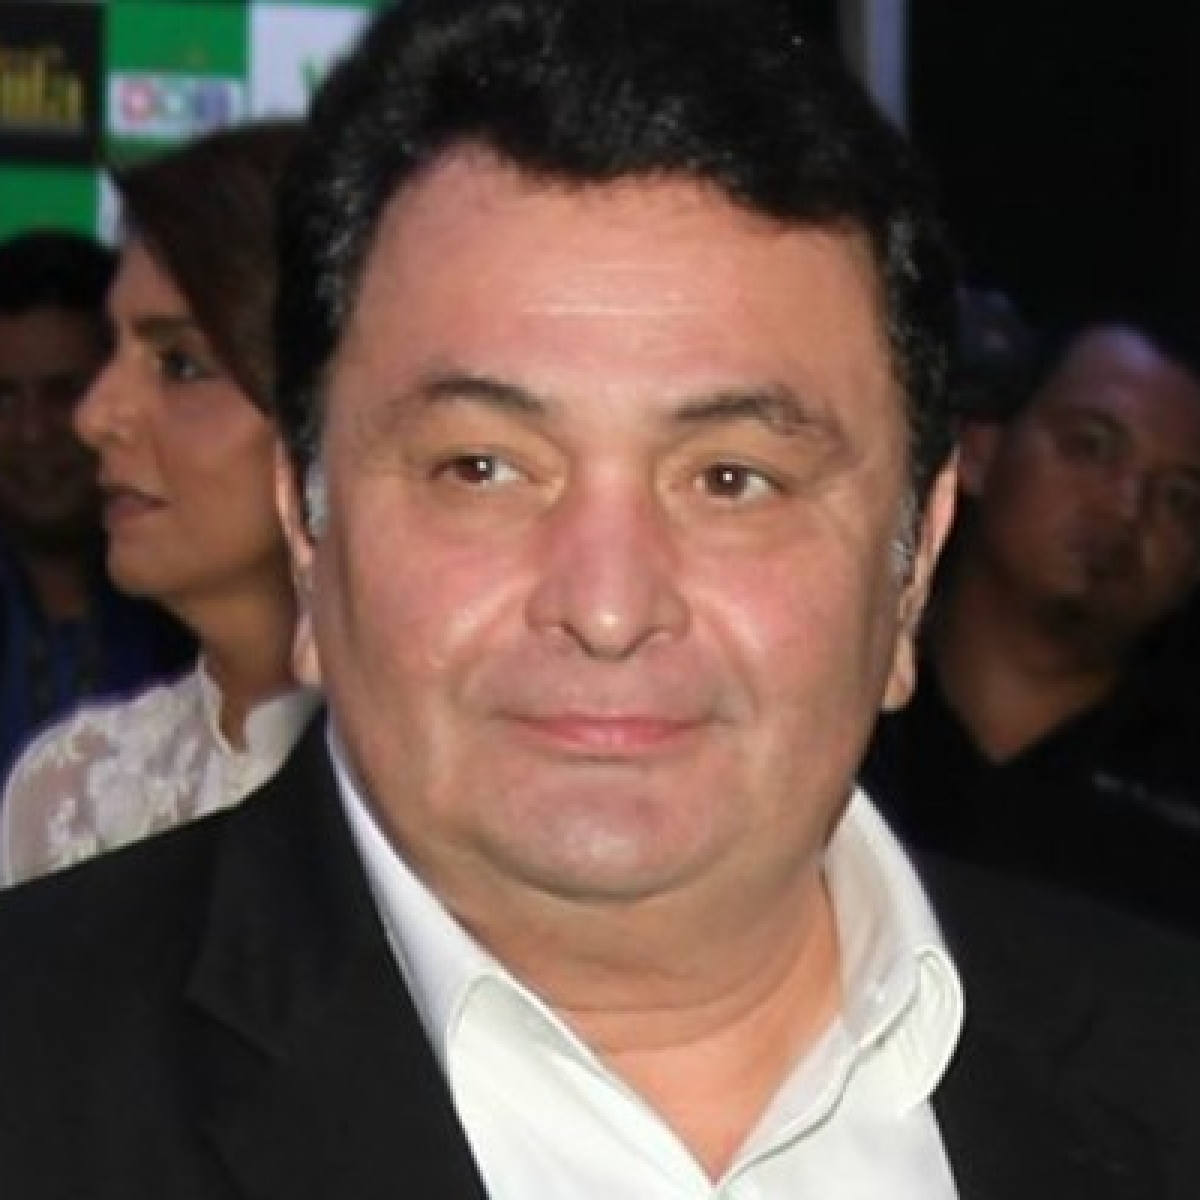 Rishi Kapoor finds the role of a father in films 'insignificant'